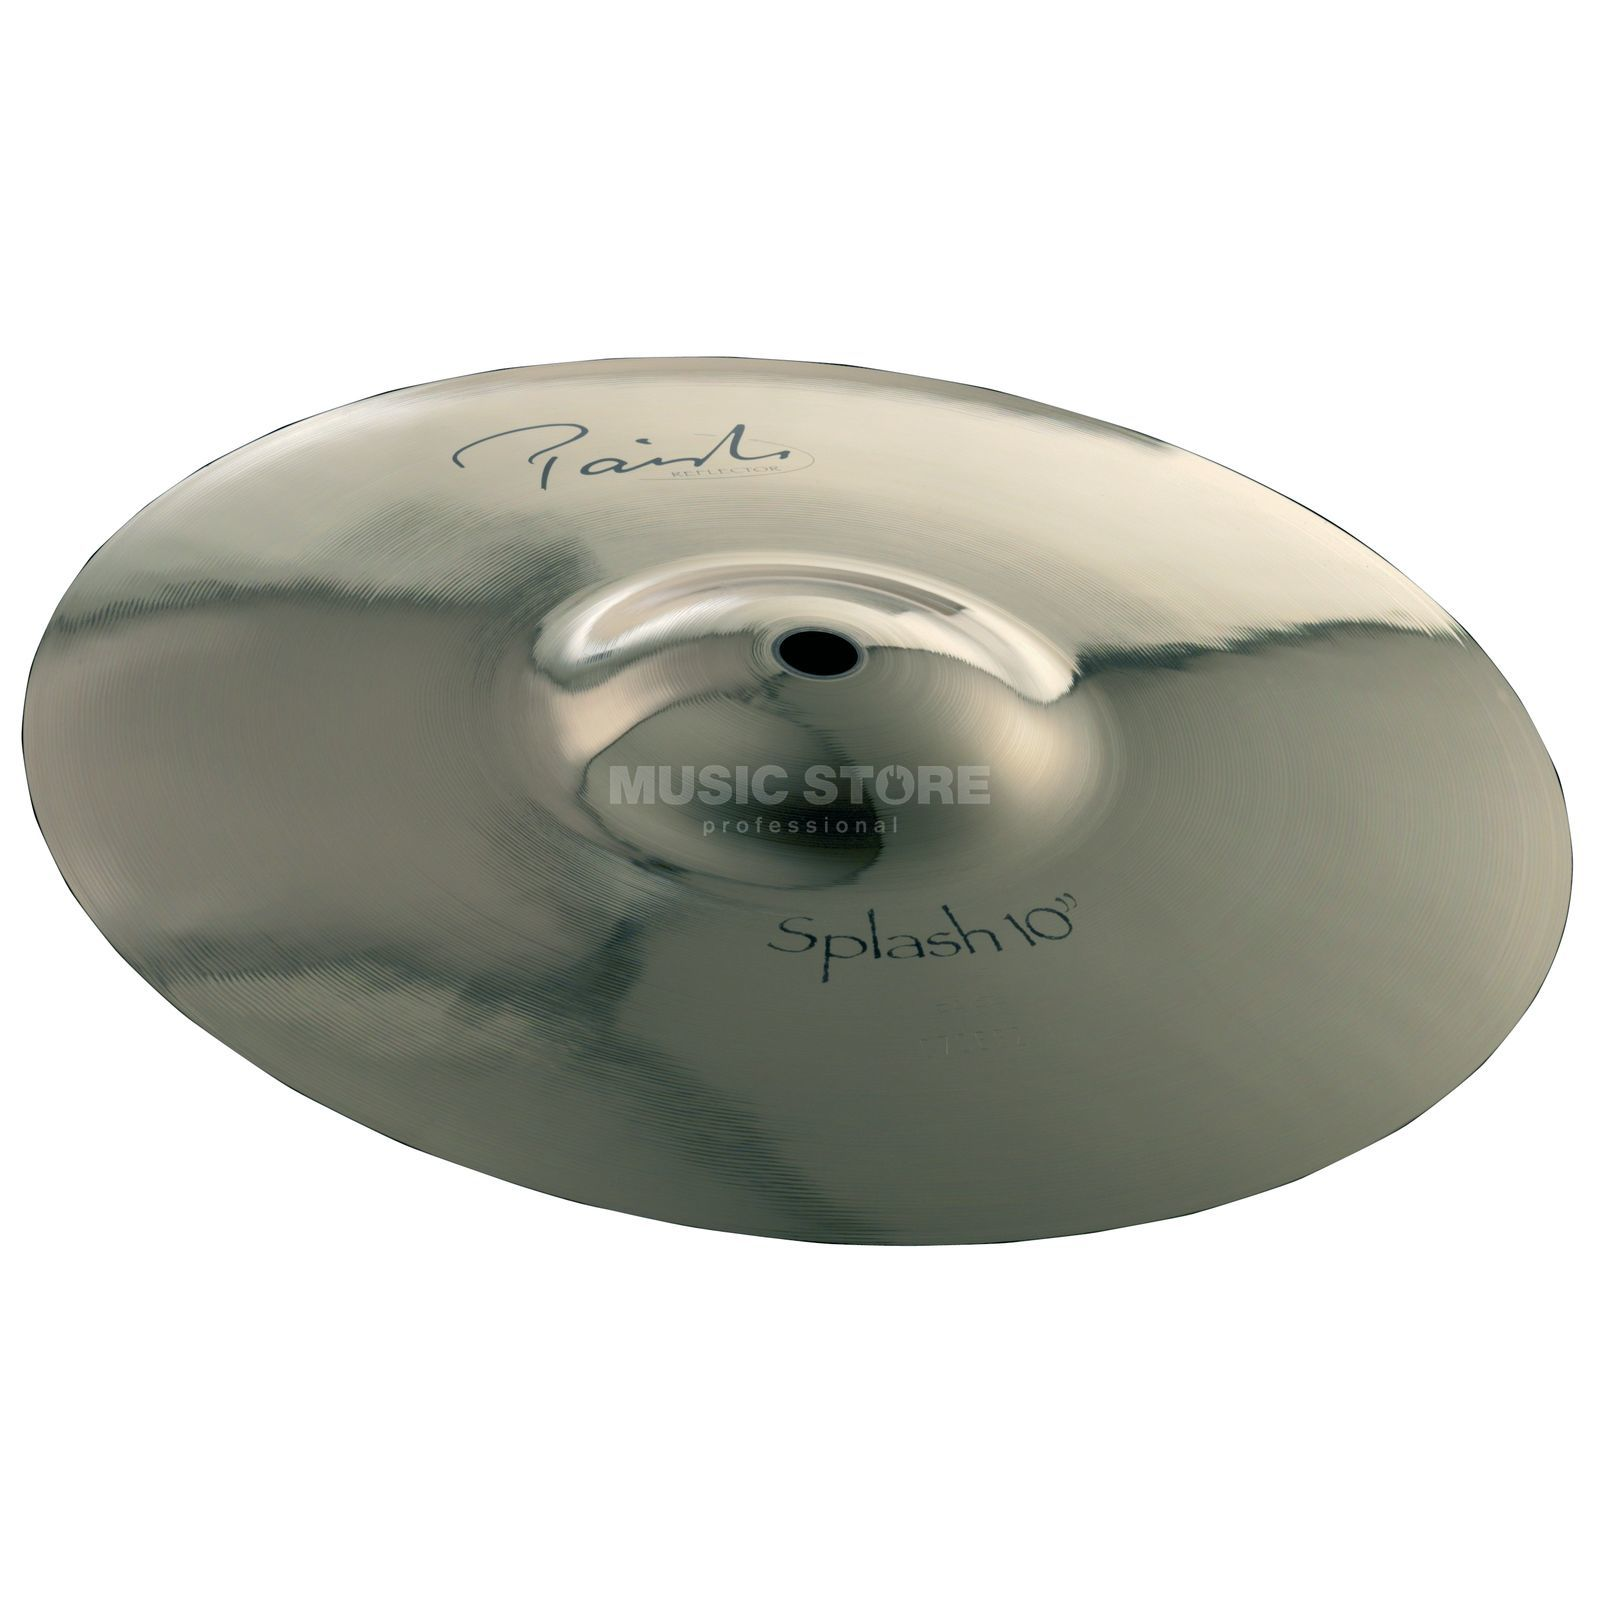 "Paiste Signature Splash 10"" Reflector Finish Zdjęcie produktu"